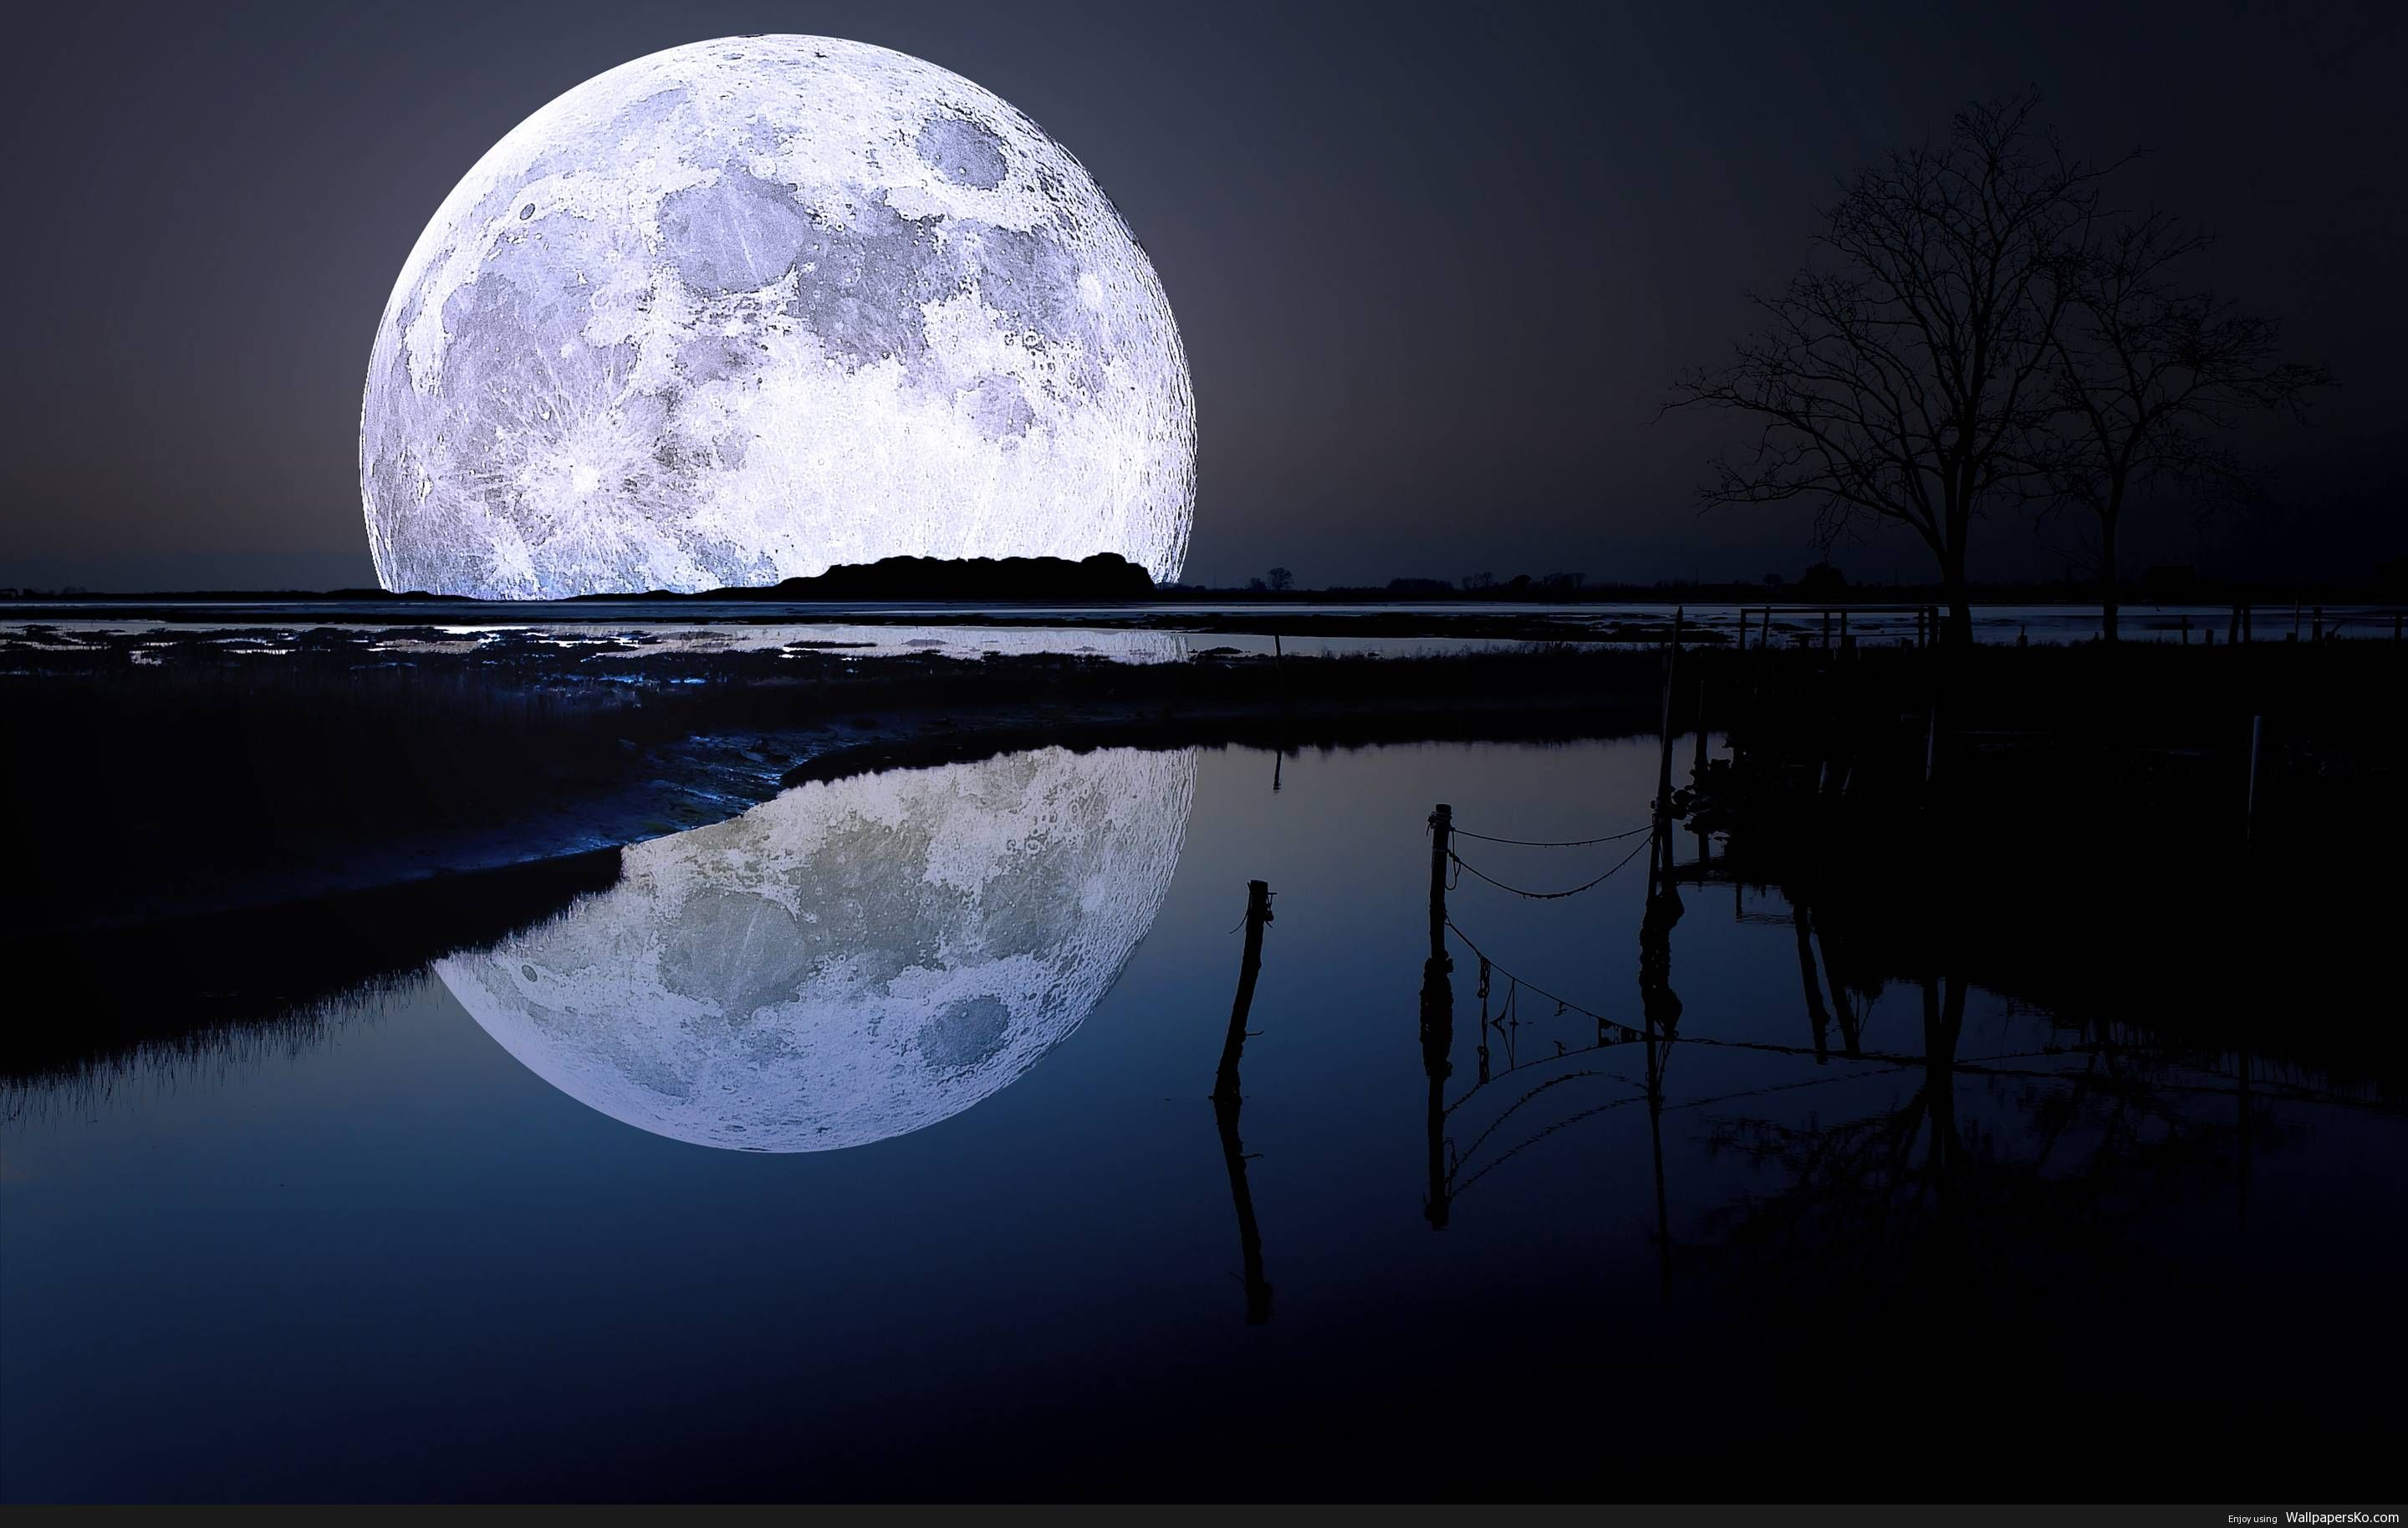 Moon Wallpaper Hd 1920x1080 Http Wallpapersko Com Moon Wallpaper